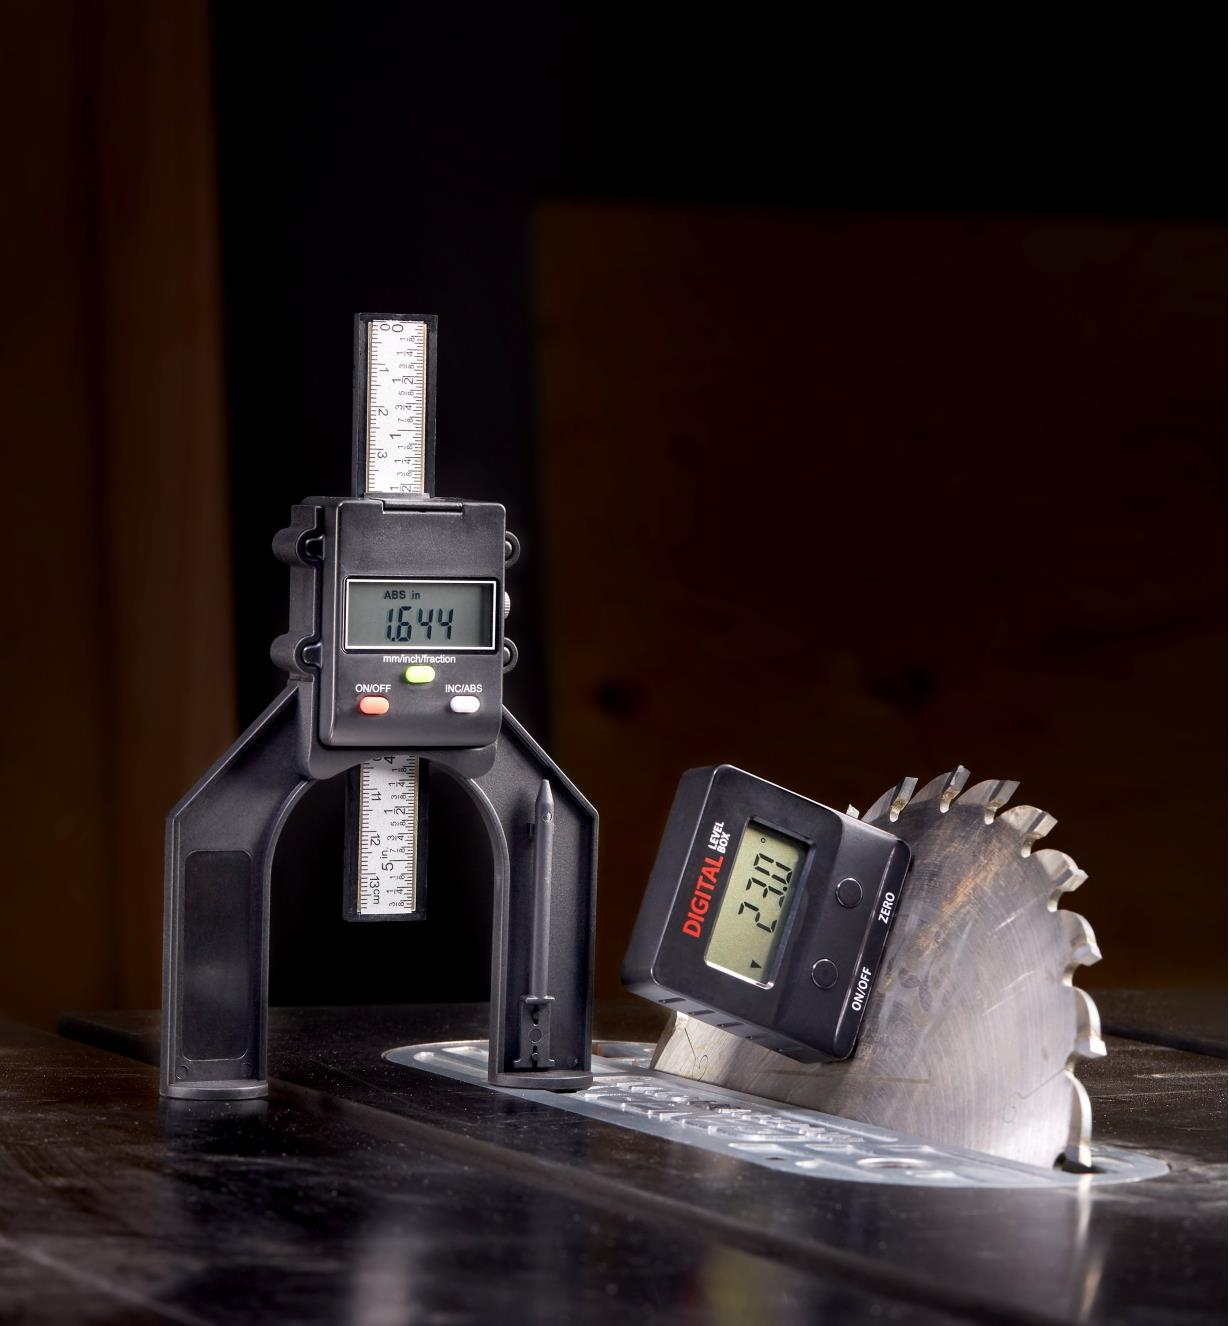 A digital height gauge beside a digital level box mounted magnetically to an angled table saw blade